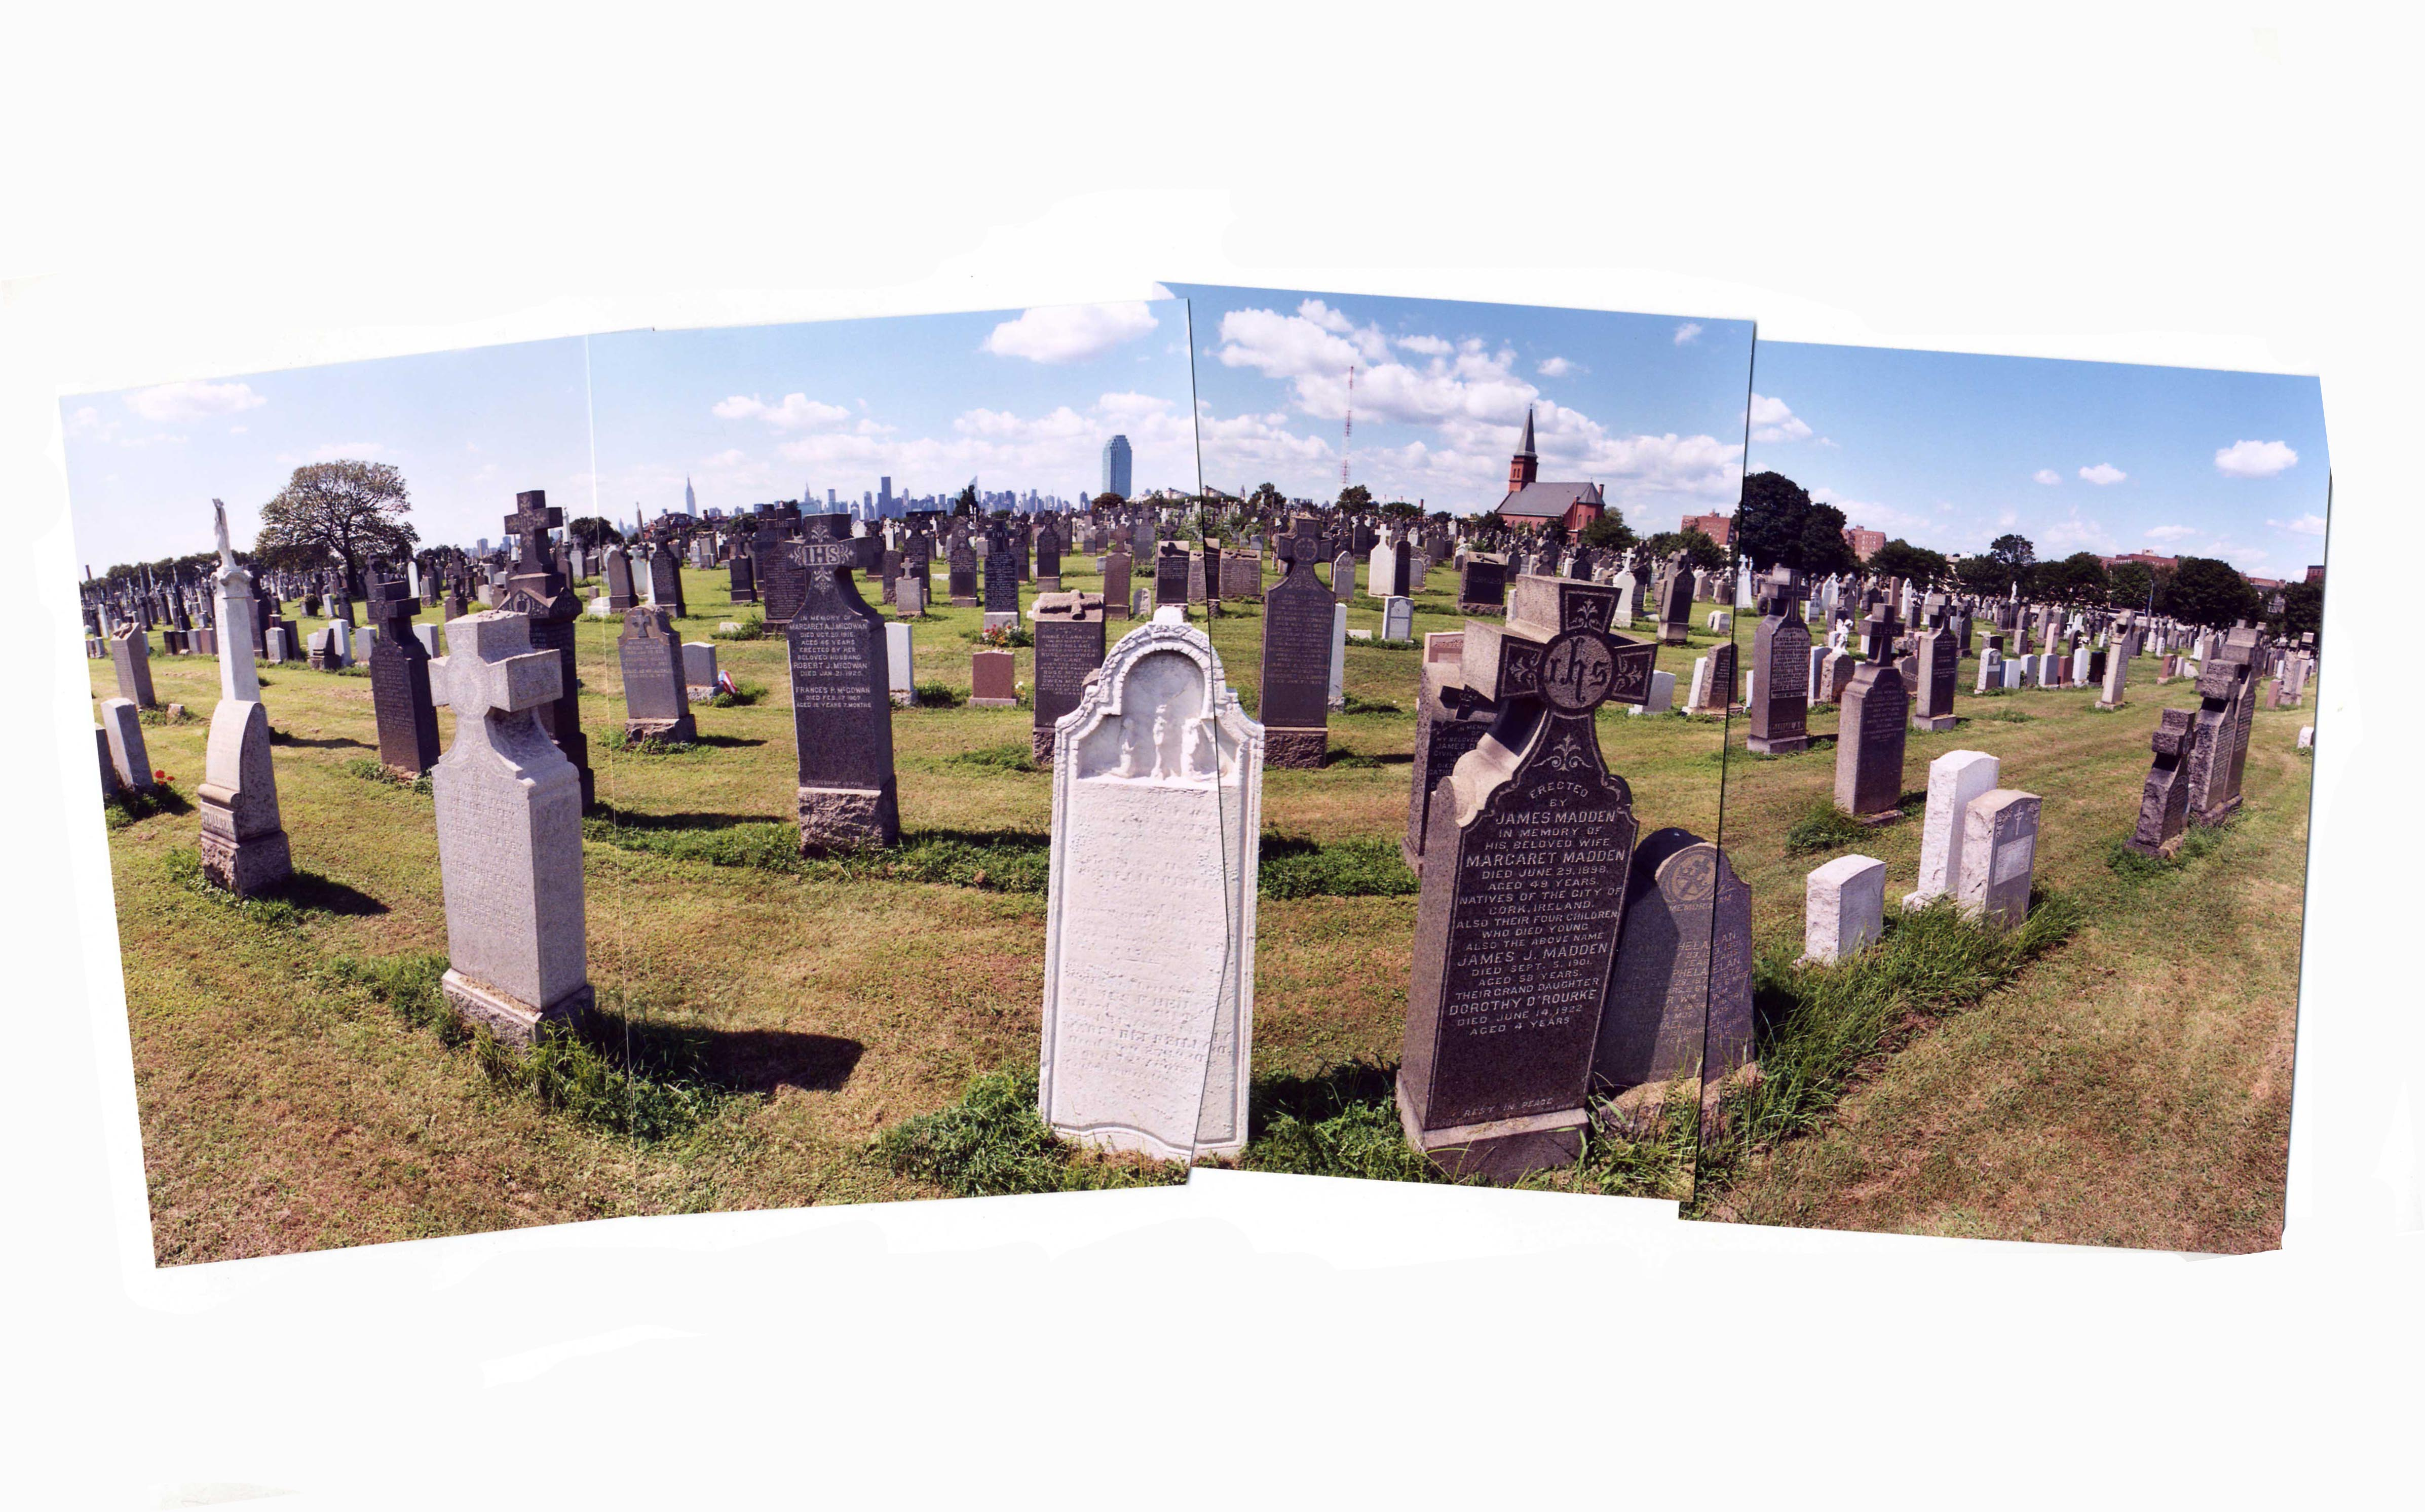 Calvary Cemetery, Queens, New York (2004)